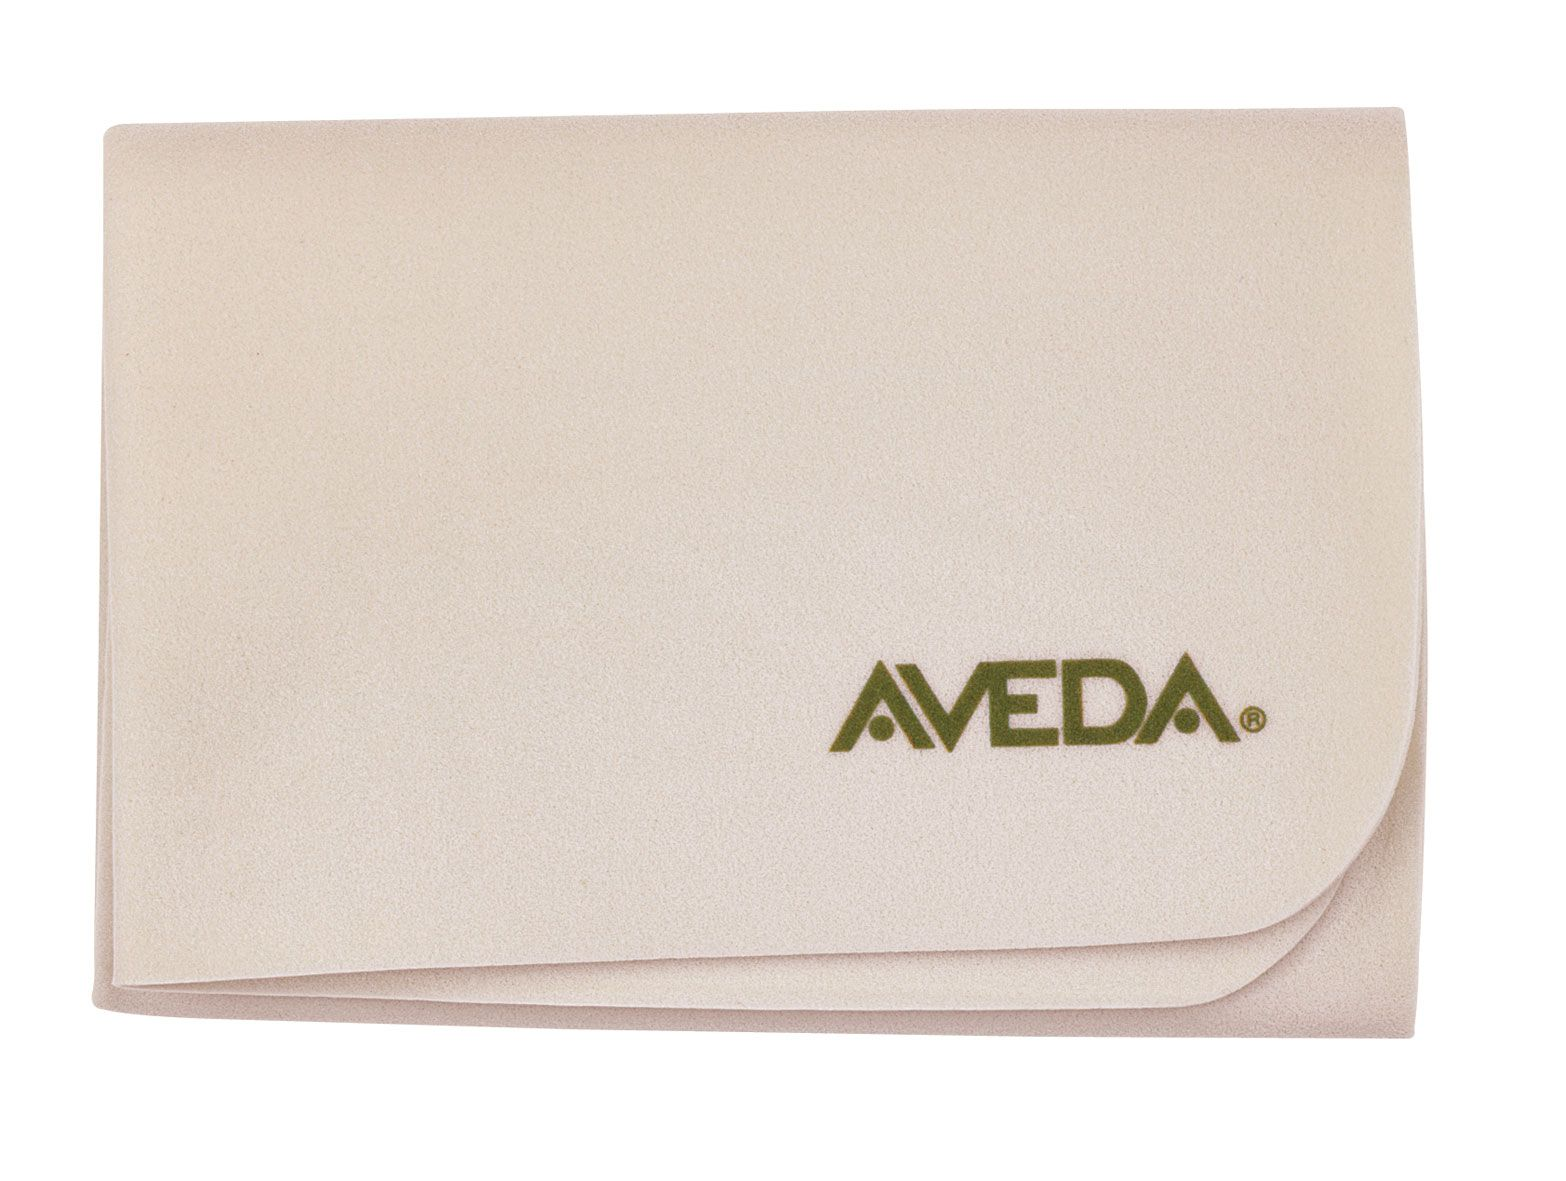 Aveda Aveda Shammy Cloth